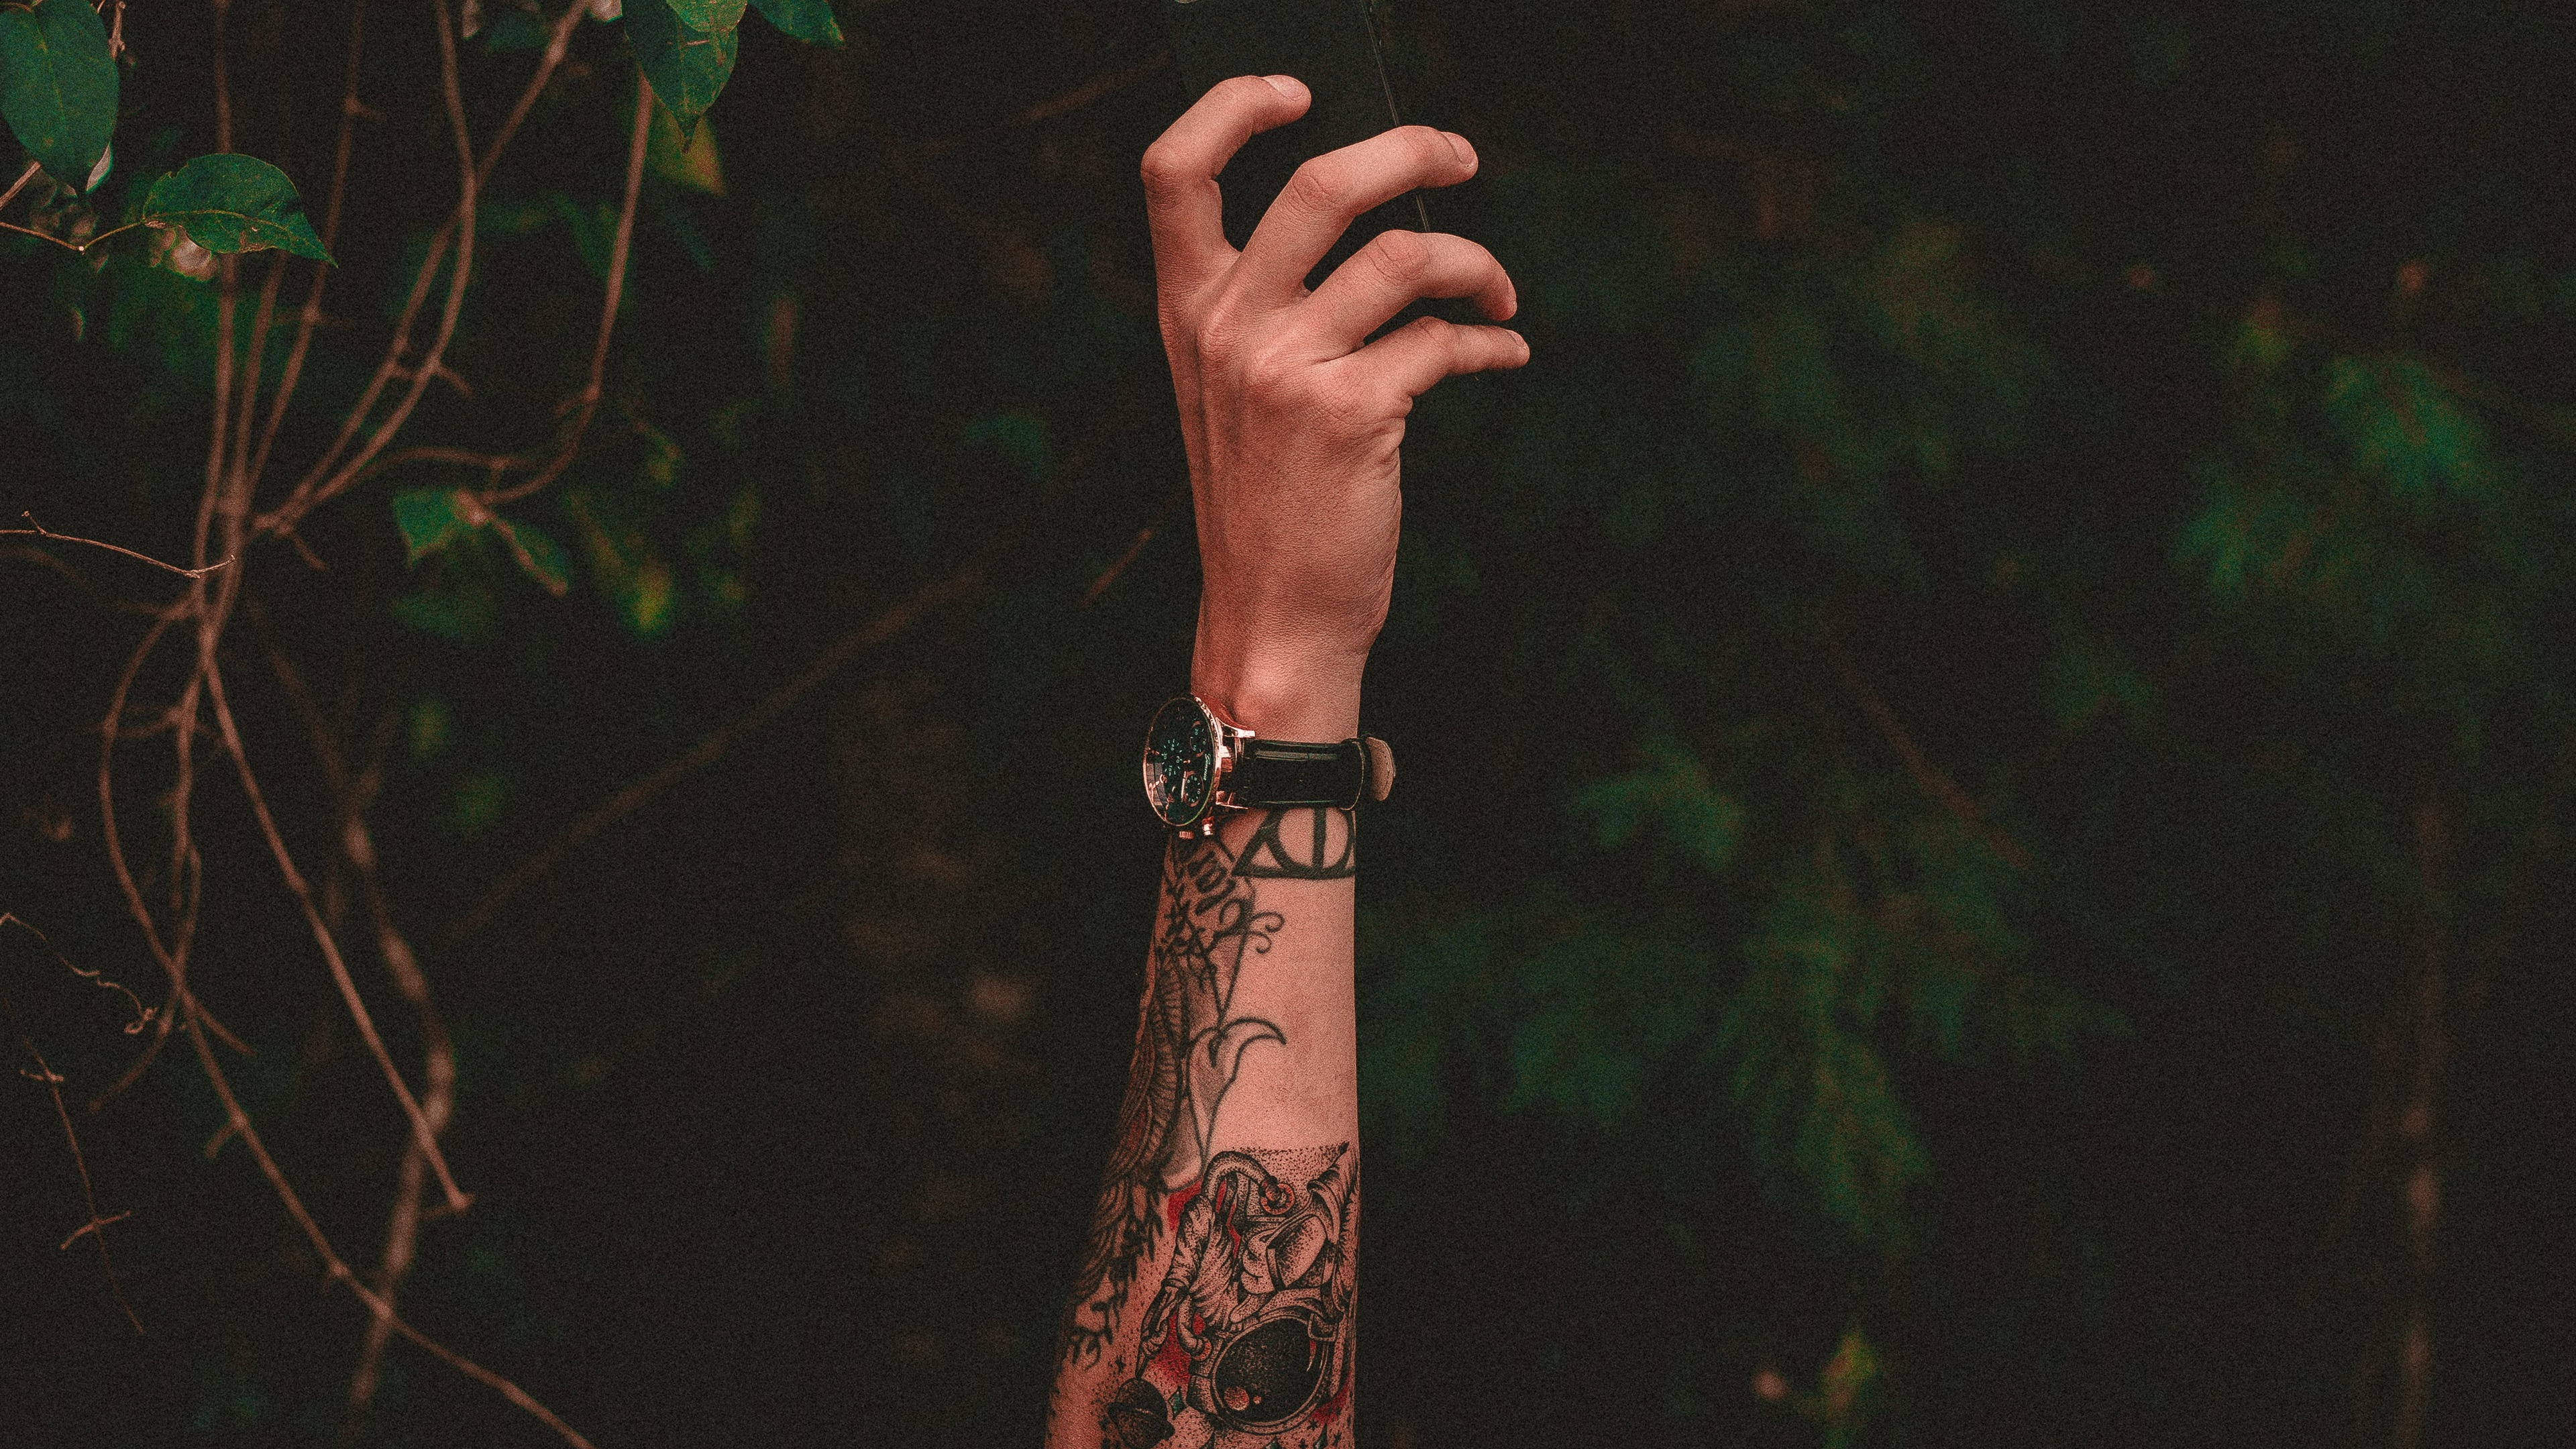 Wallpaper Hand Tattoo Watch 3840x2160 Uhd 4k Picture Image